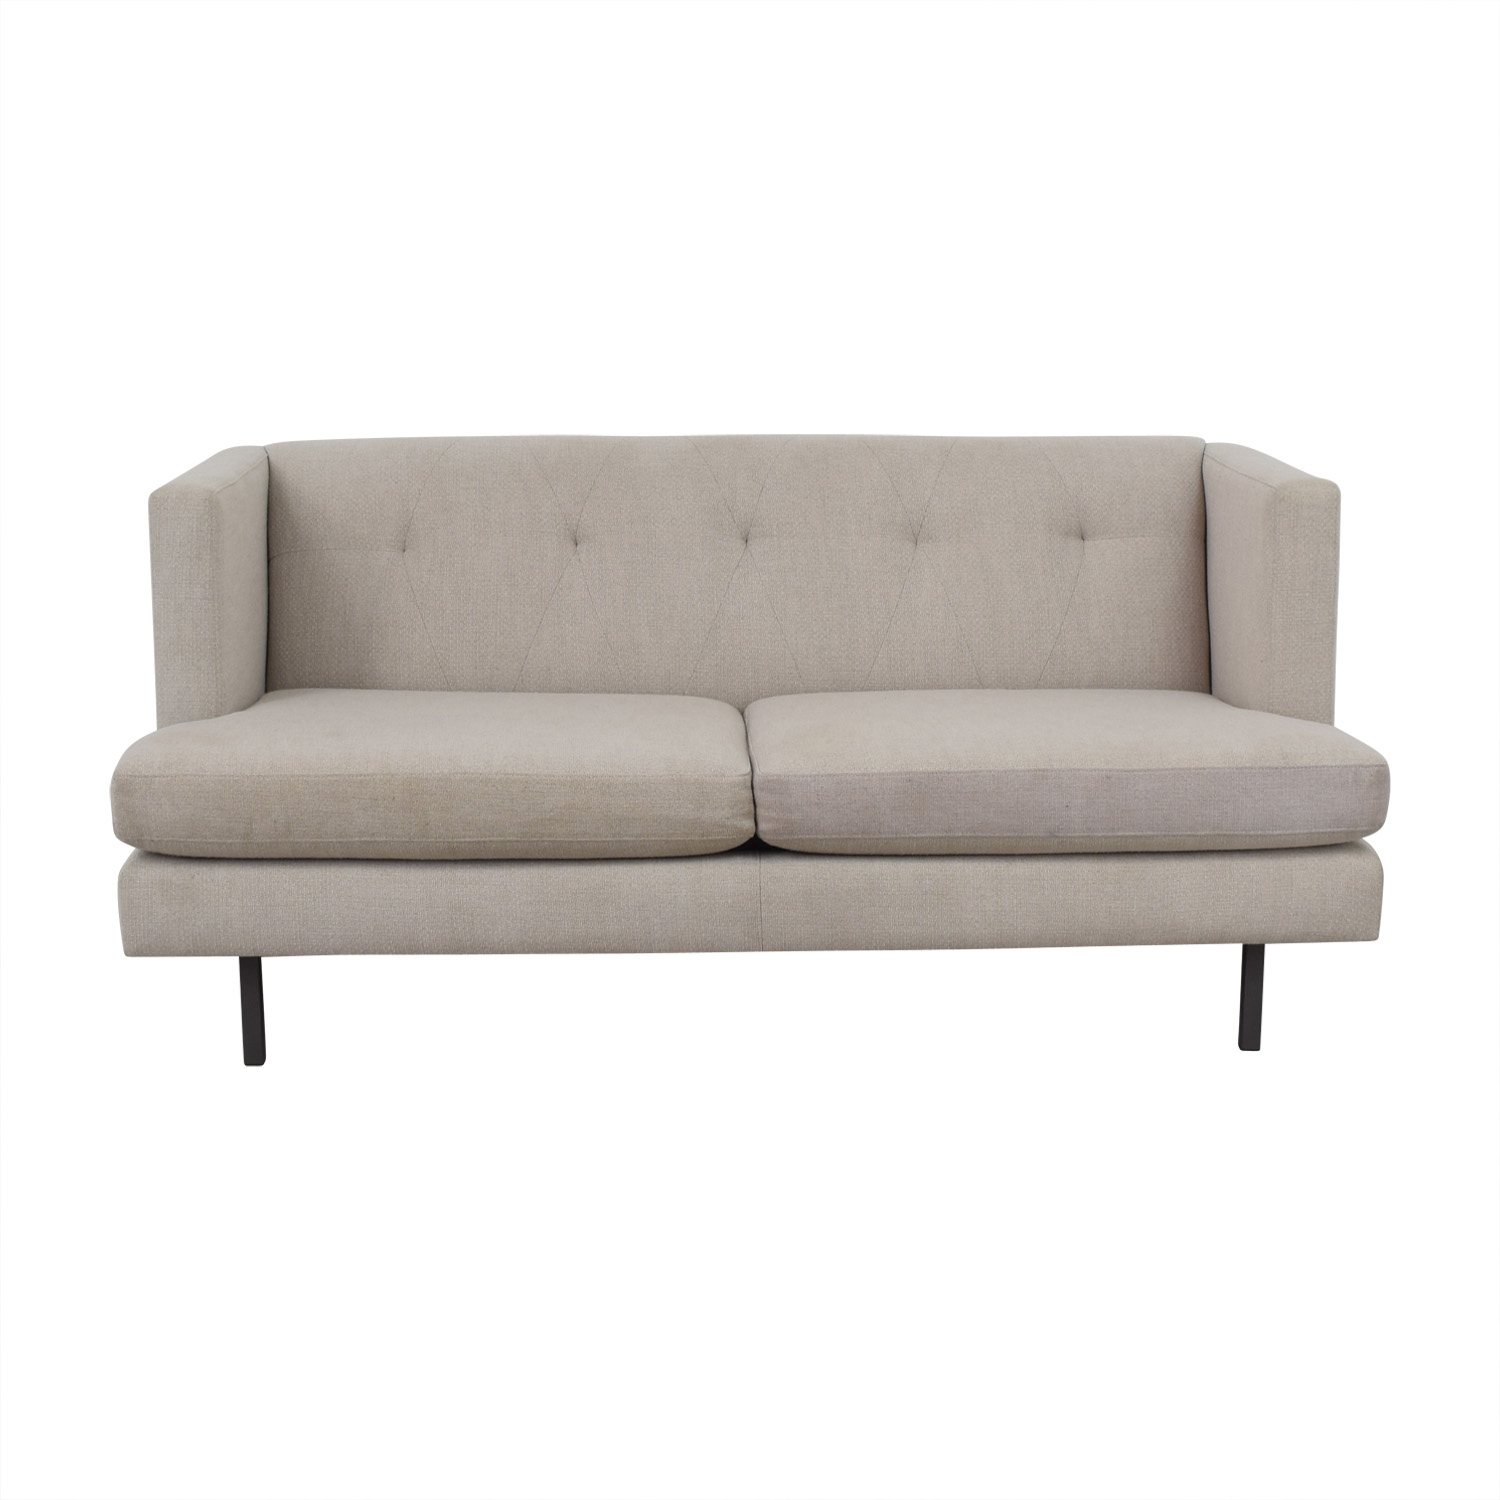 CB2 CB2 Avec Apartment Sofa coupon